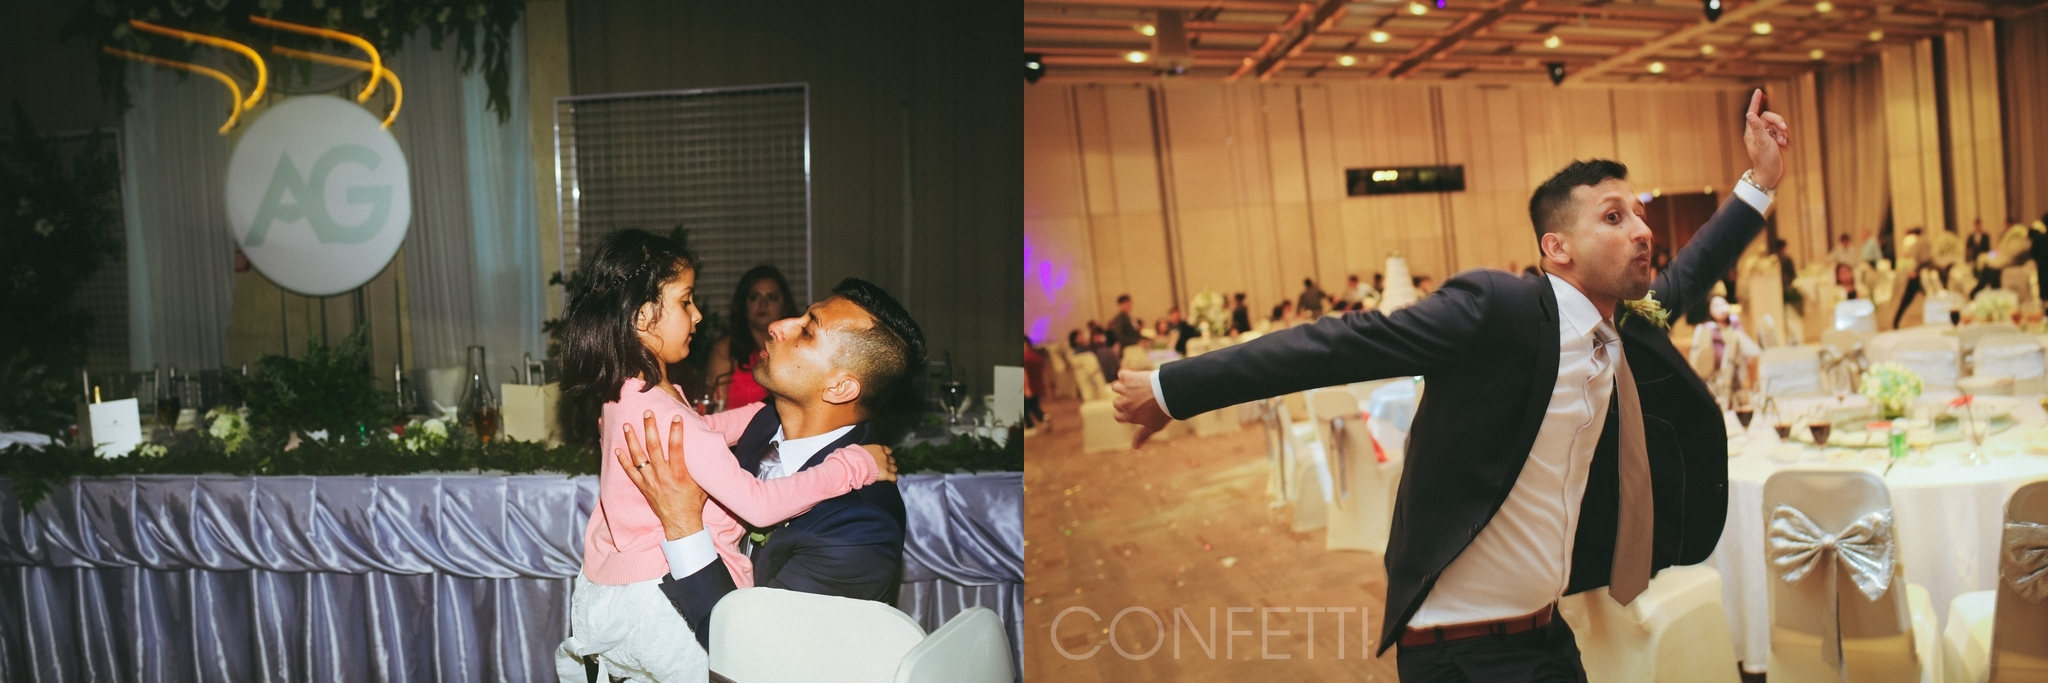 Confetti-real-wedding-Together-we-have-it-all (90)